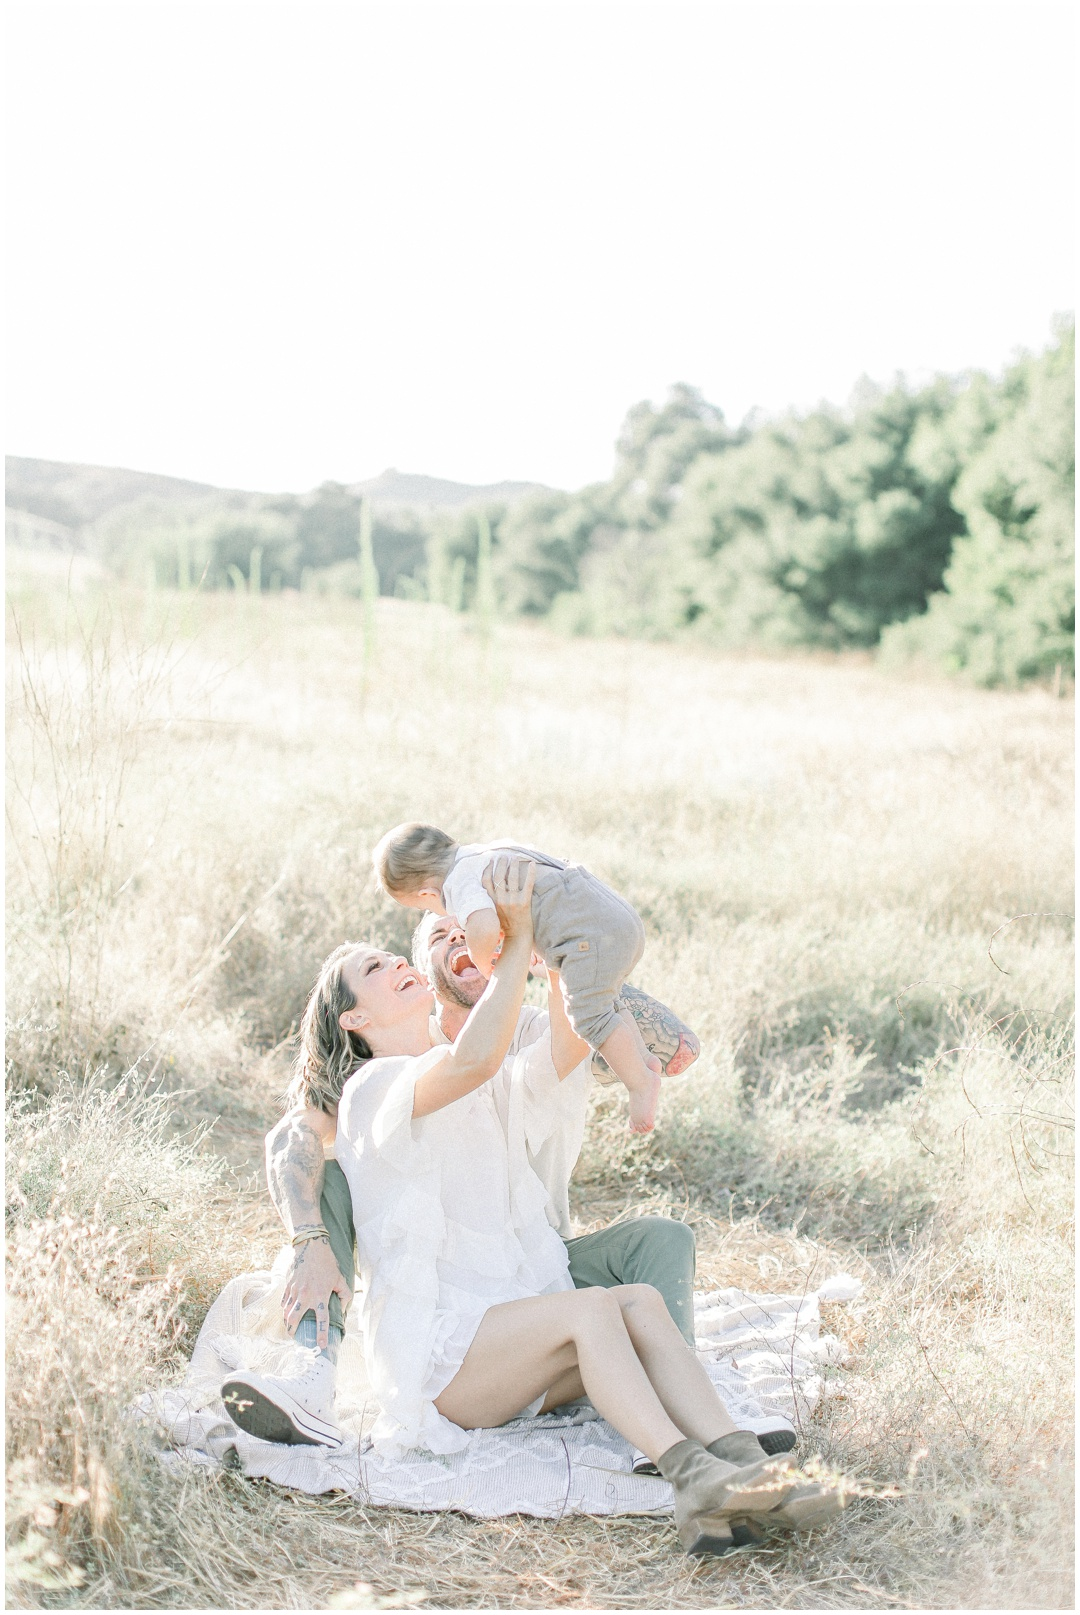 Newport_Beach_Family_Session_Orange_County_Family_Photographer_Thomas_Riley_Wilderness_Park_Carrie_Stotts_Sean_Stotts__4334.jpg